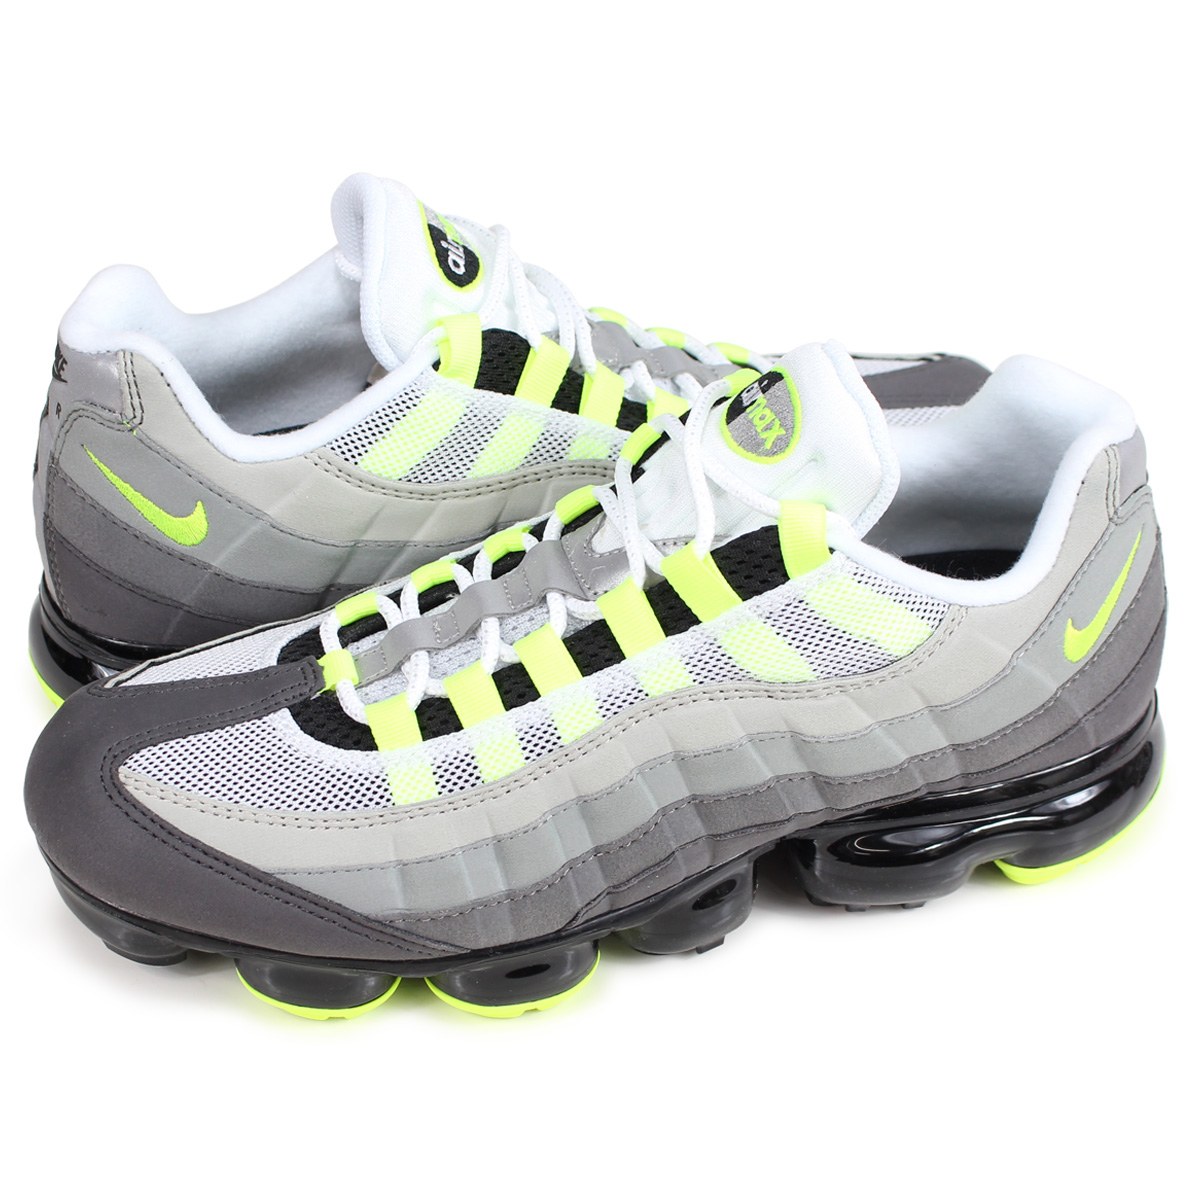 ALLSPORTS  NIKE AIR VAPORMAX 95 NEON Nike air vapor max 95 sneakers men  AJ7292-001 neon yellow  load planned Shinnyu load in reservation product  8 20 ... 5da2b5210f1f